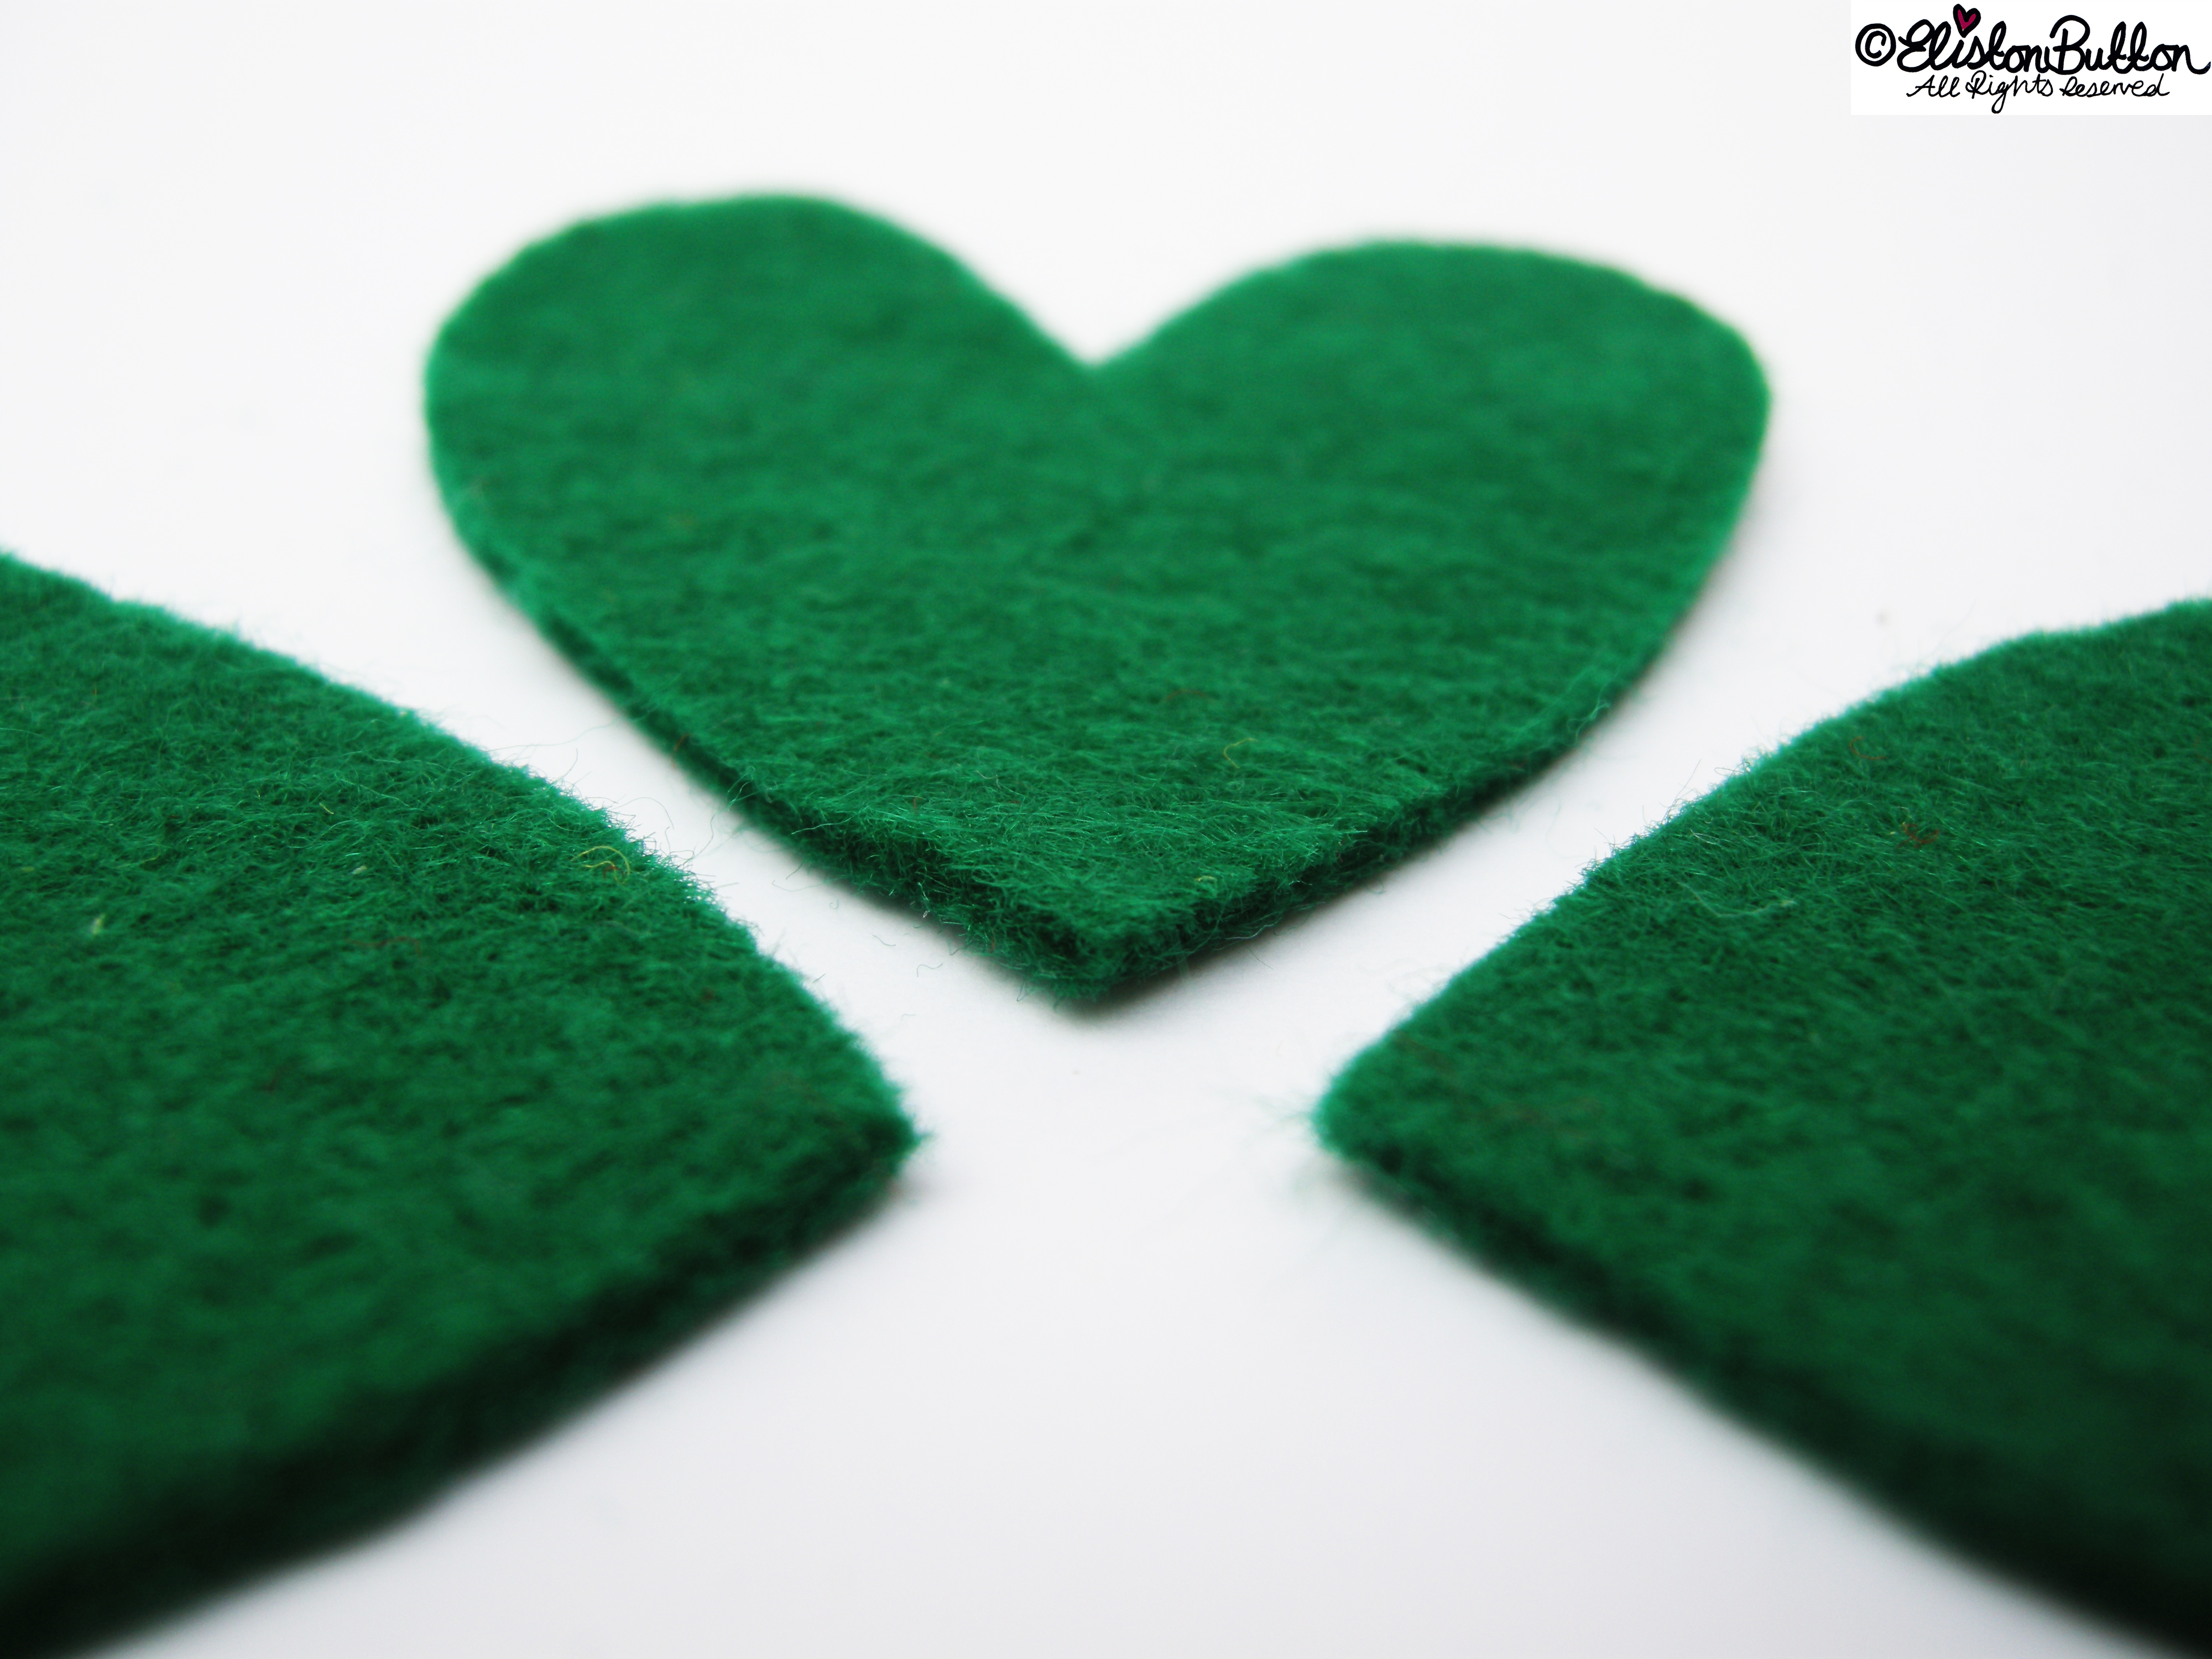 Emerald Green Felt Hearts - 27 Before 27 – Lucky at www.elistonbutton.com - Eliston Button - That Crafty Kid – Art, Design, Craft & Adventure.